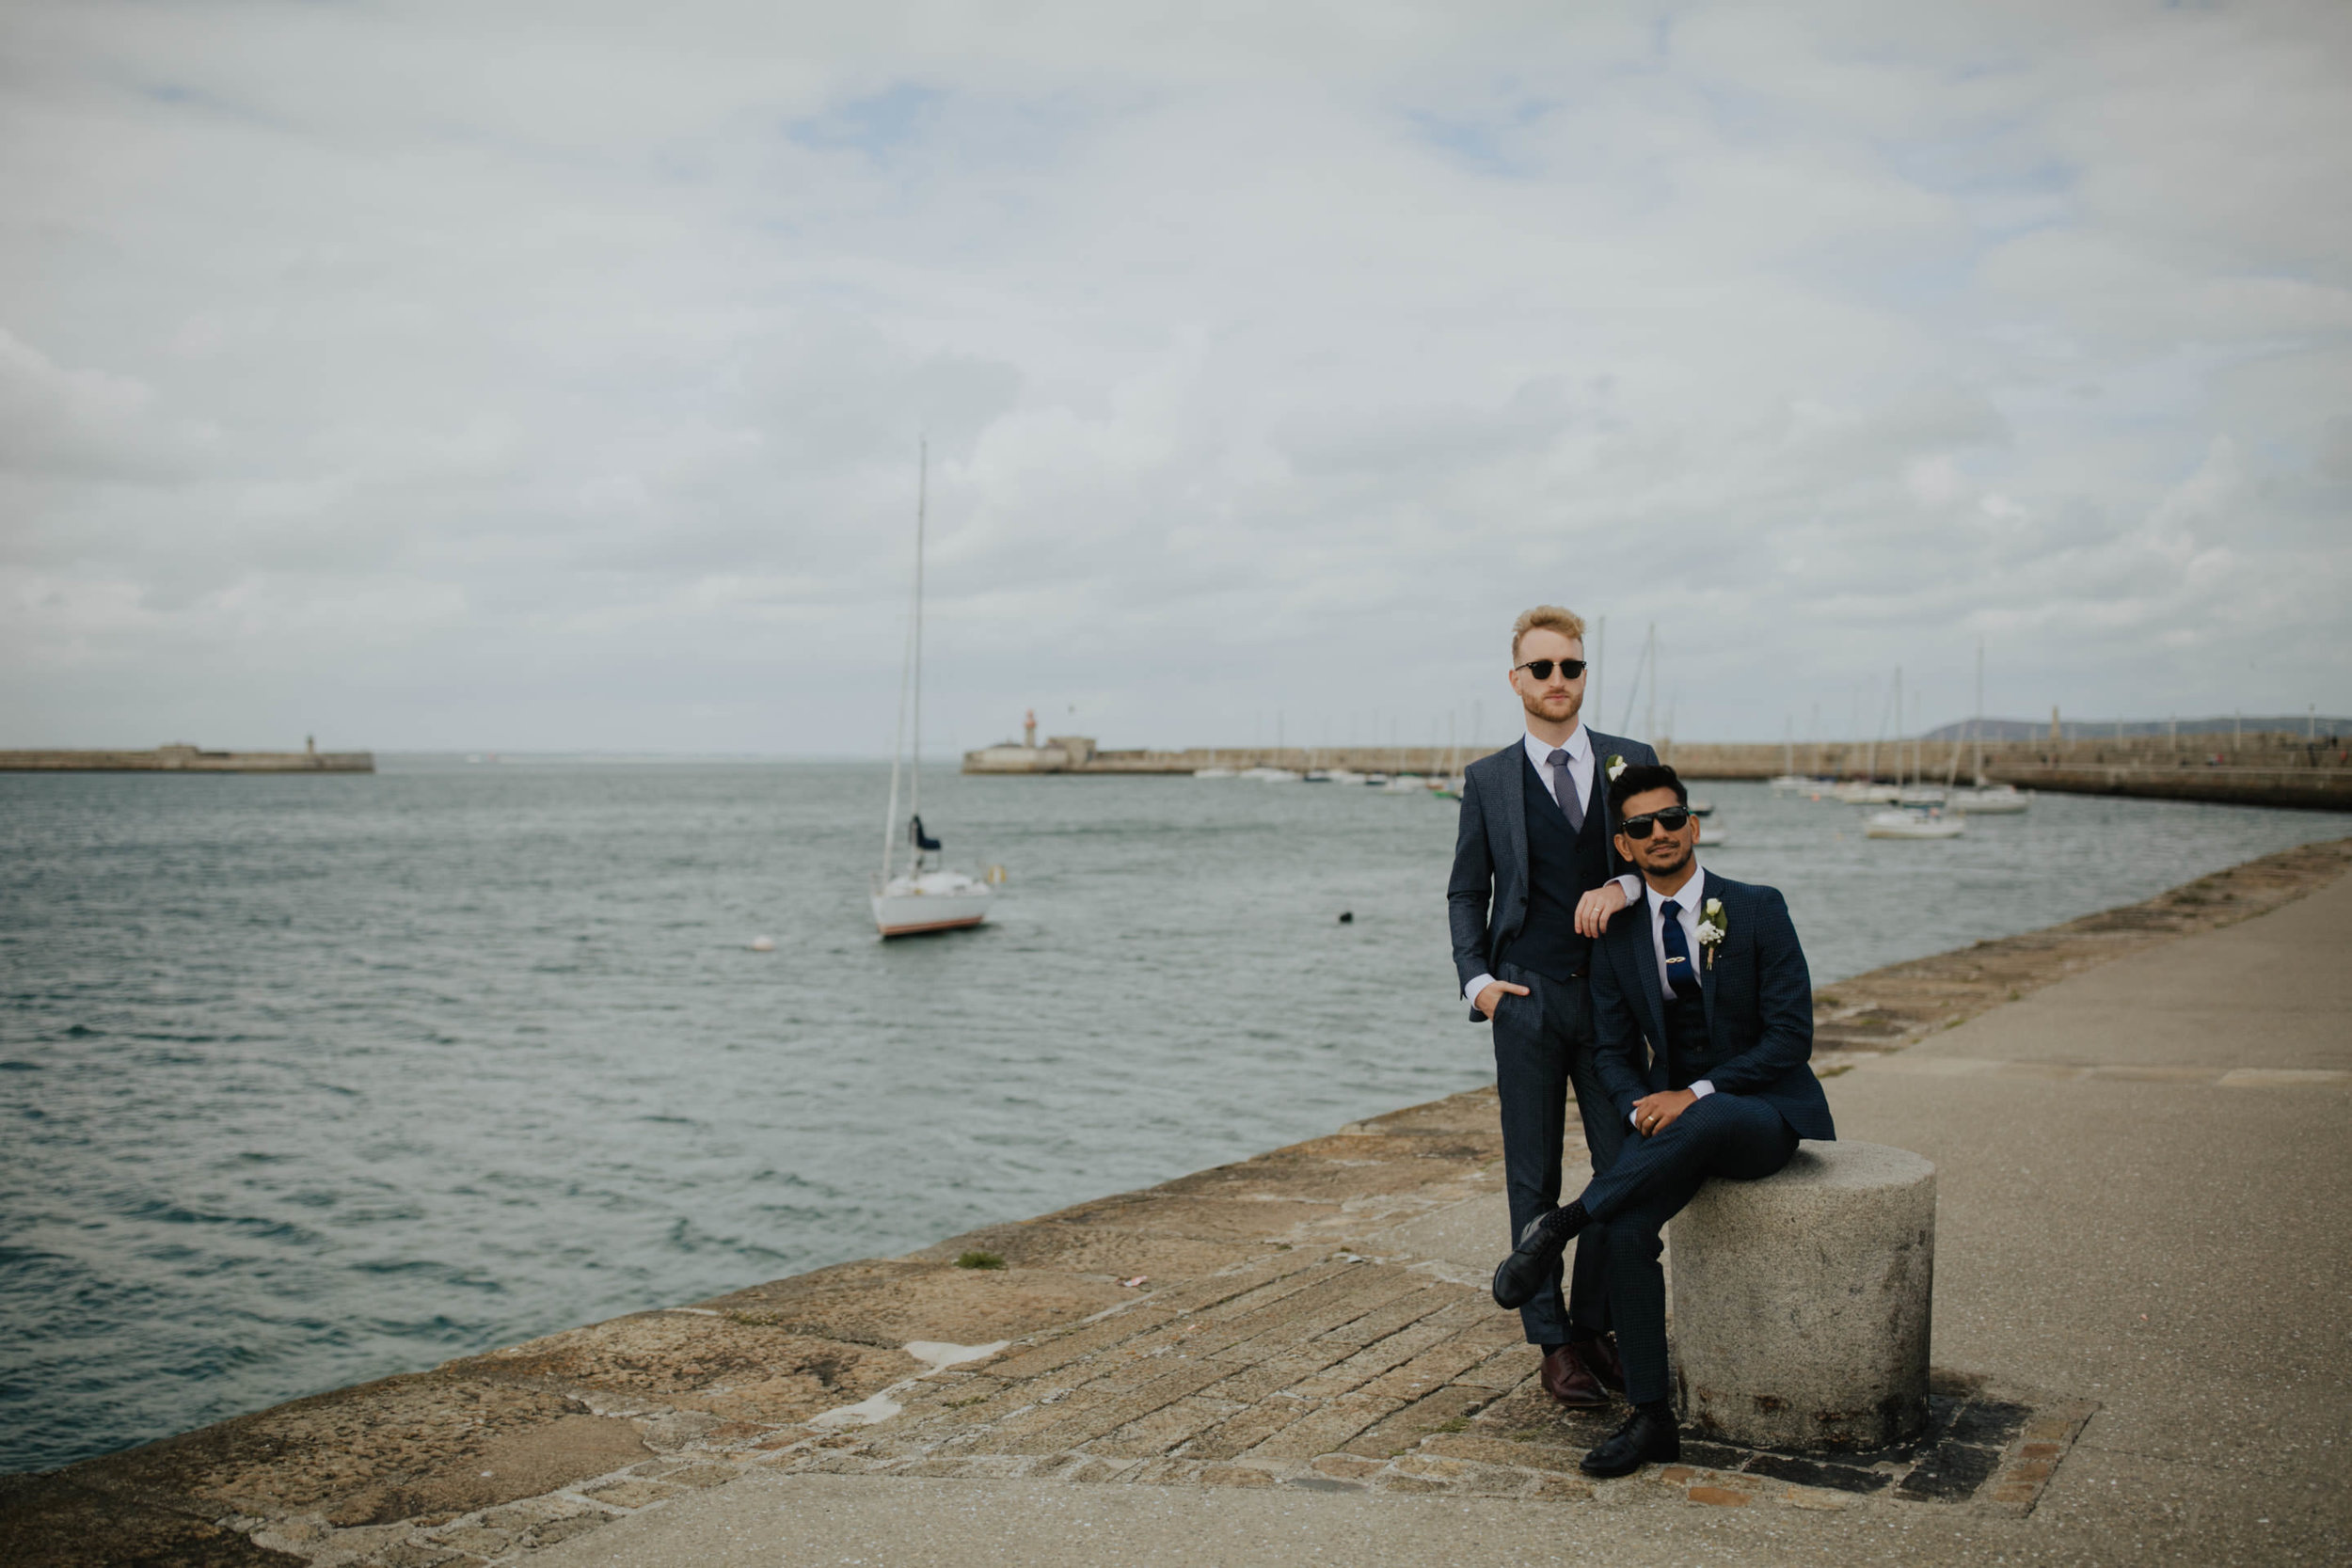 d&l_dunlaoghaire_wedding_photographer_livia_figueiredo_13.jpg